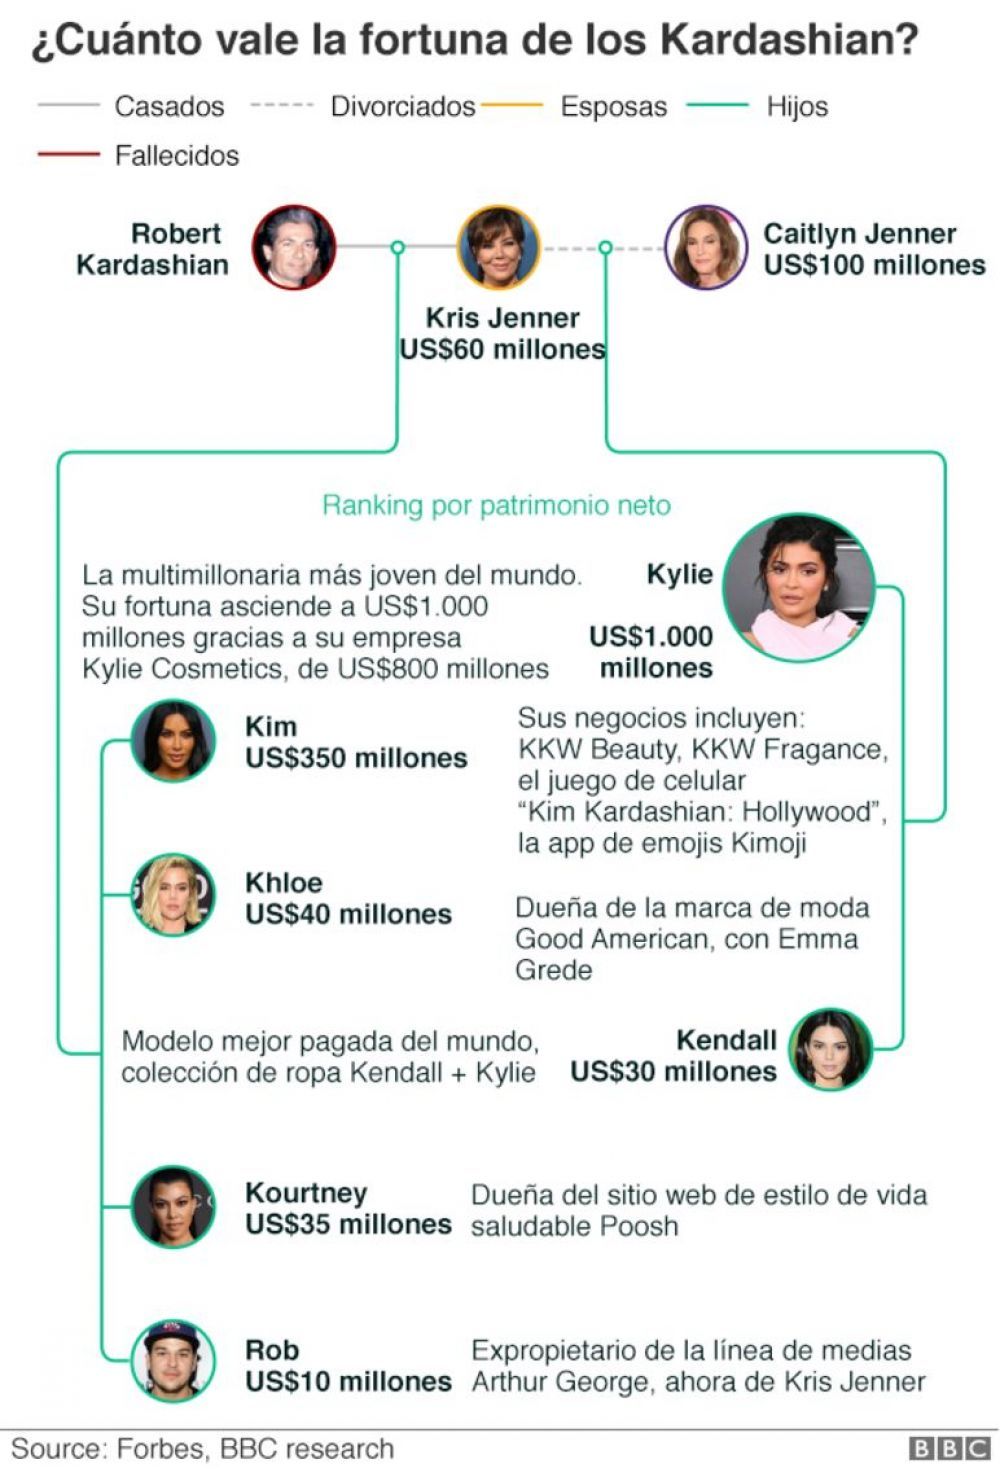 Fuente: Forbes, BBC Research